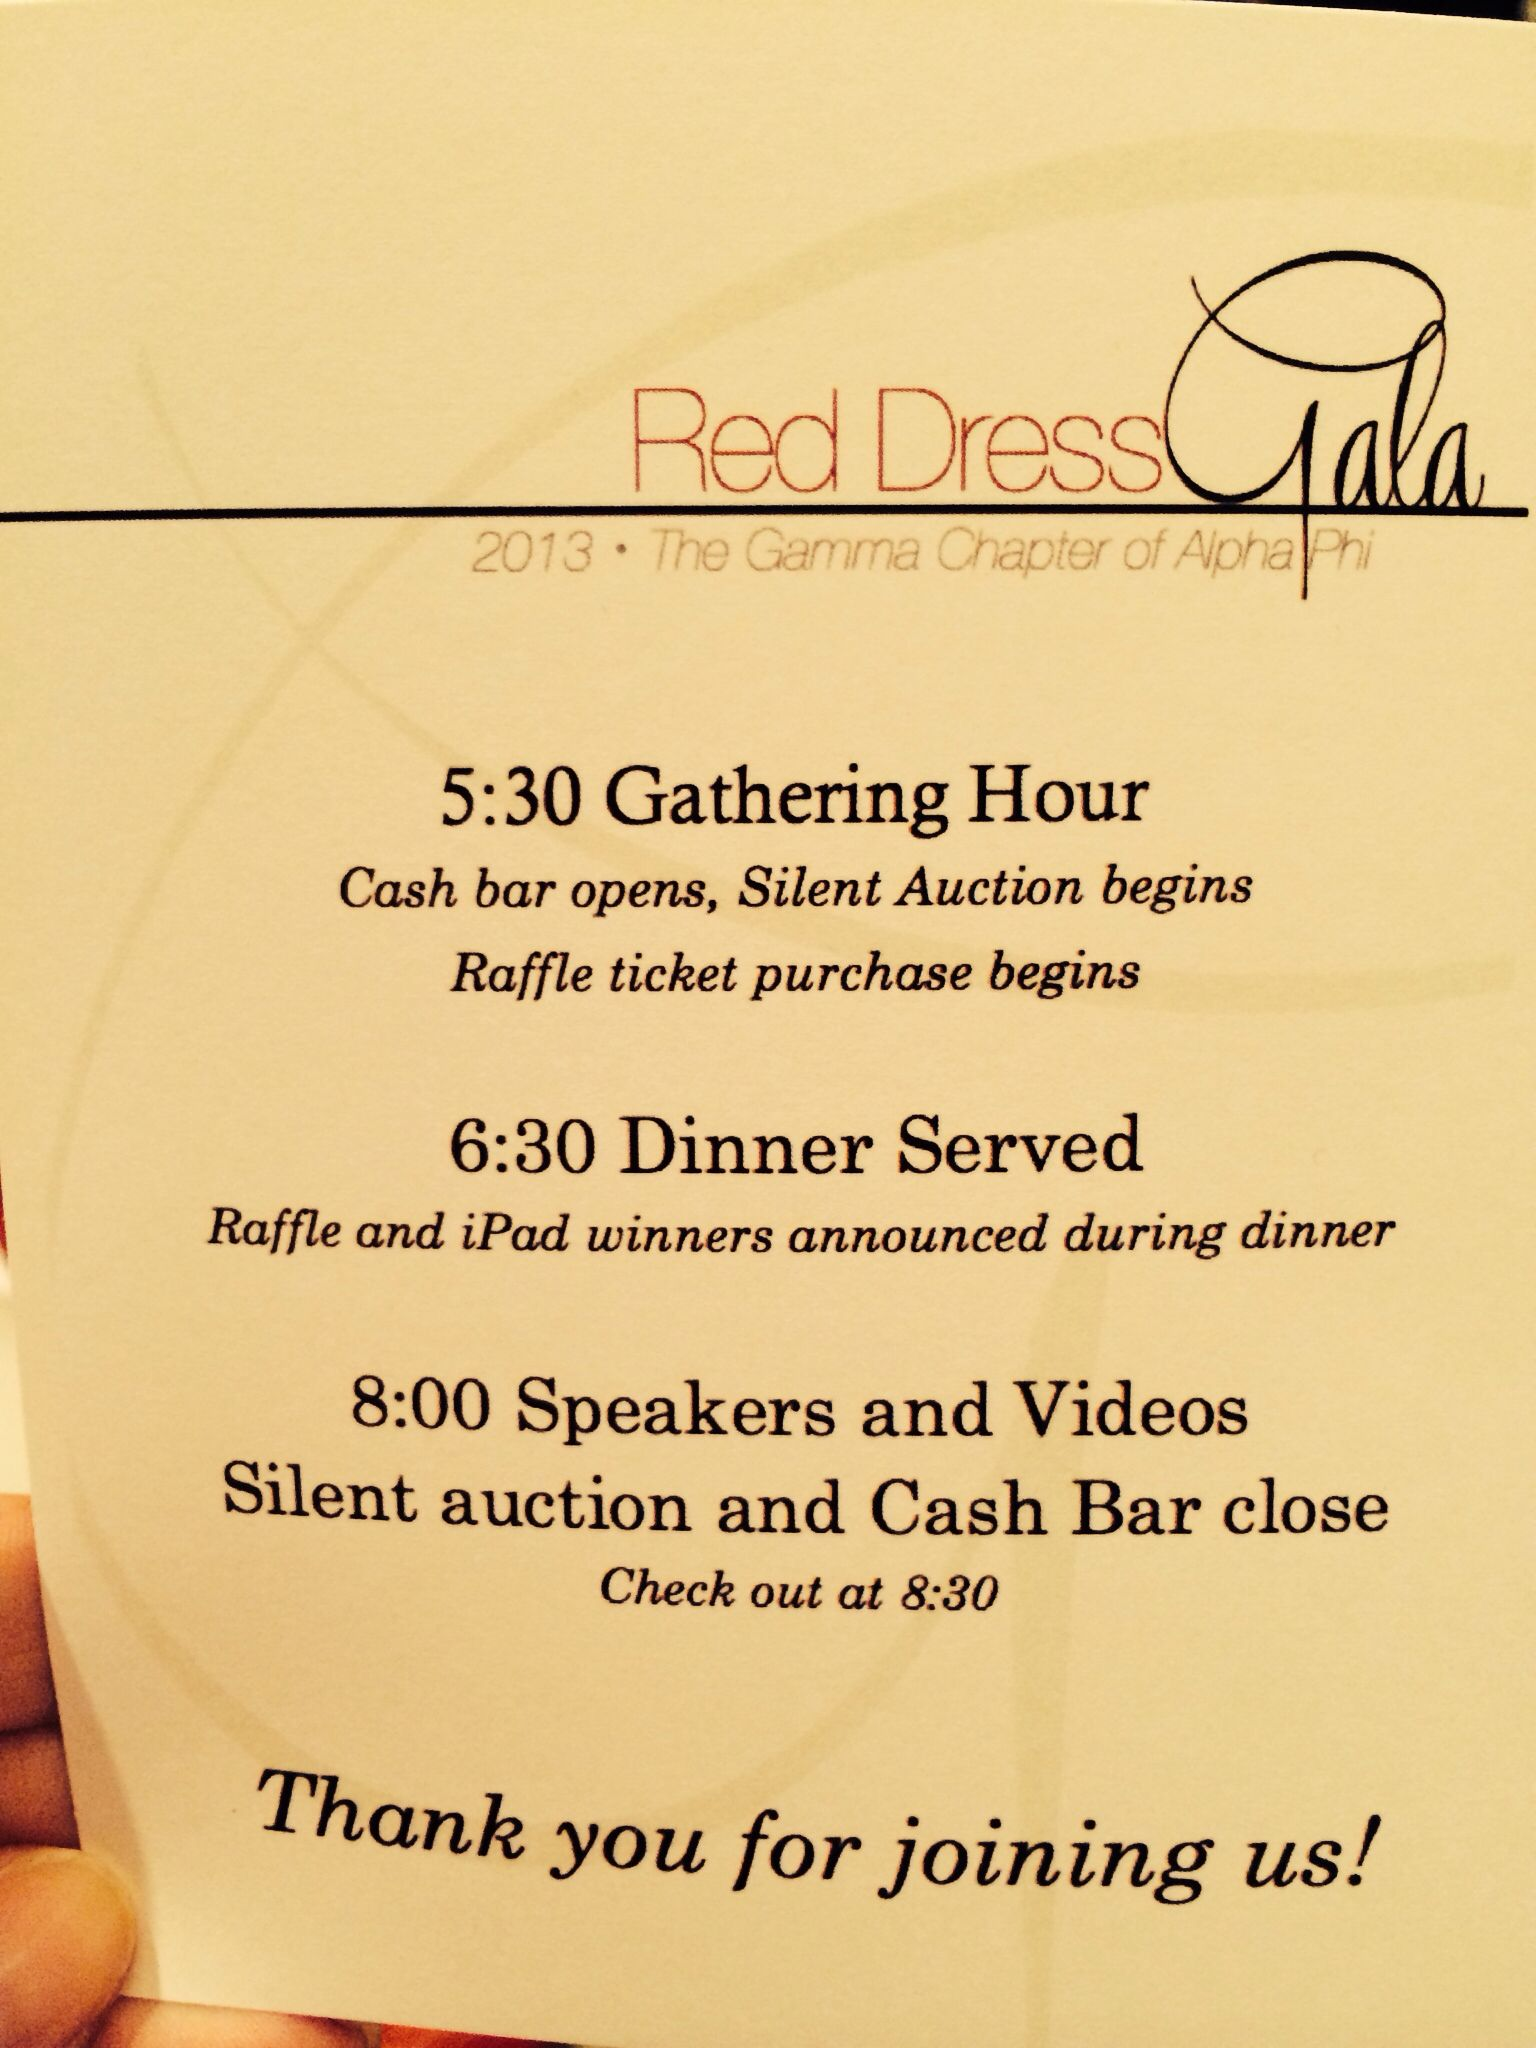 Program Used At GammaDepauwS Red Dress Gala In Oct   Red